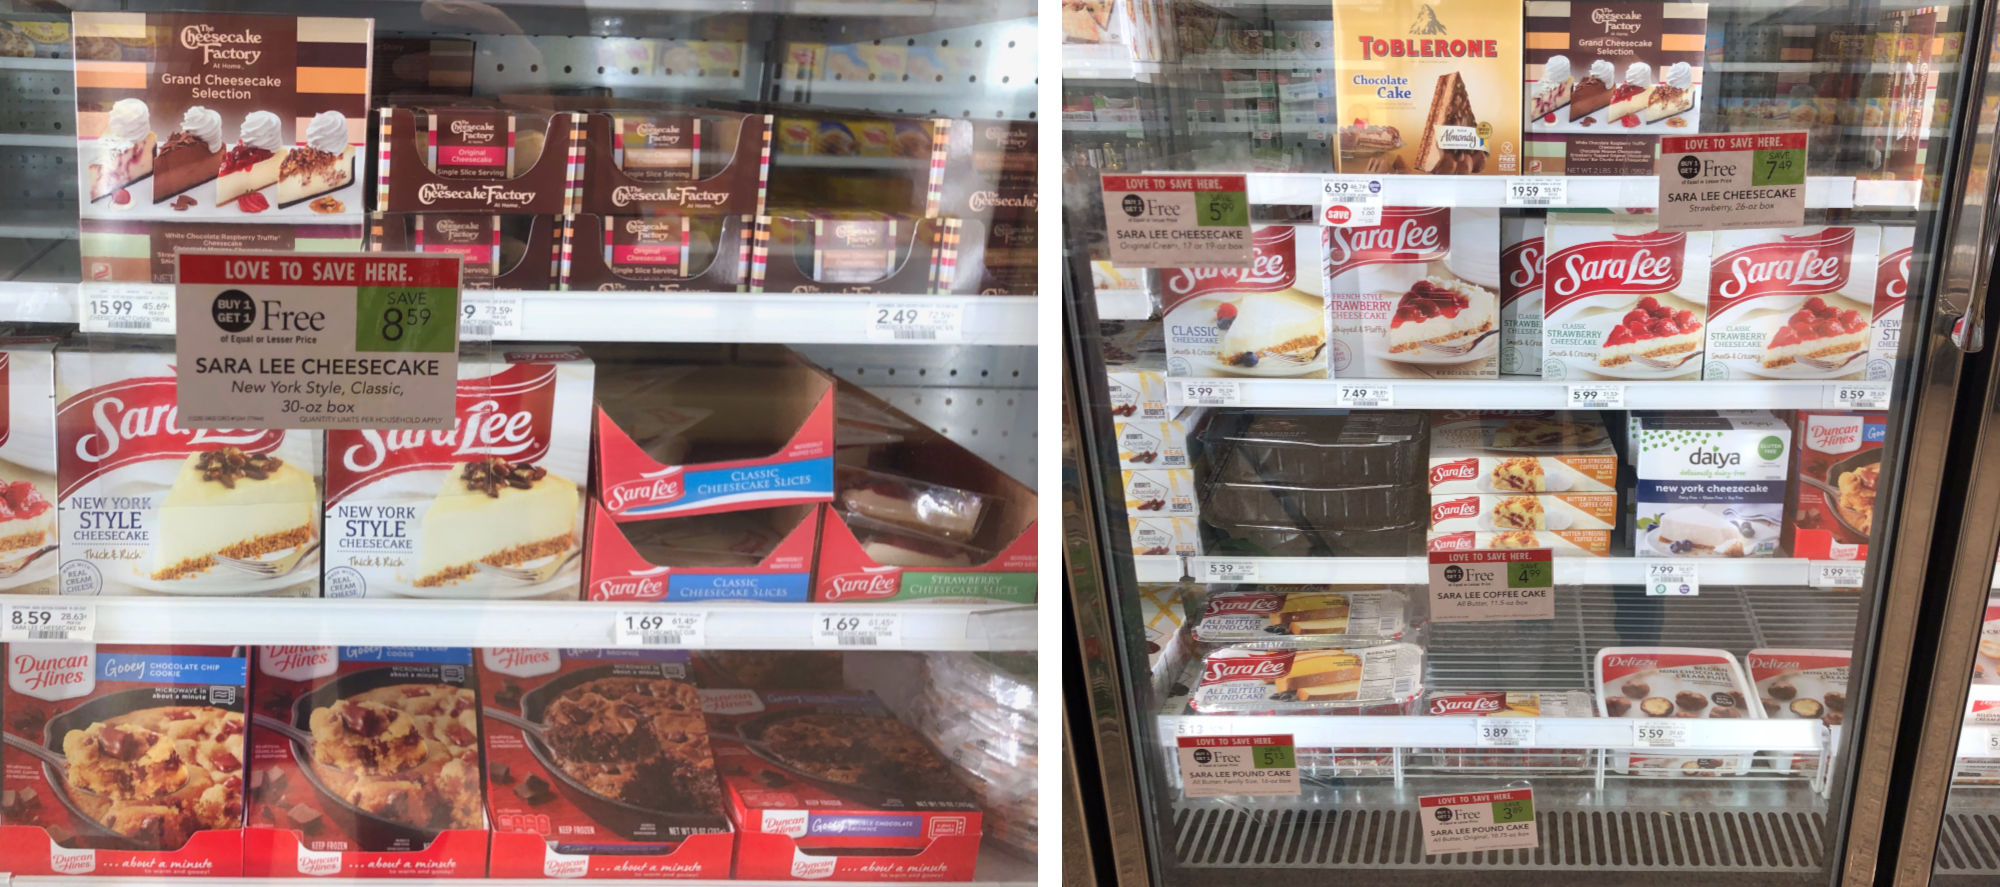 Sara Lee Pound Cheesecake Slices As Low As 20¢ At Publix on I Heart Publix 1